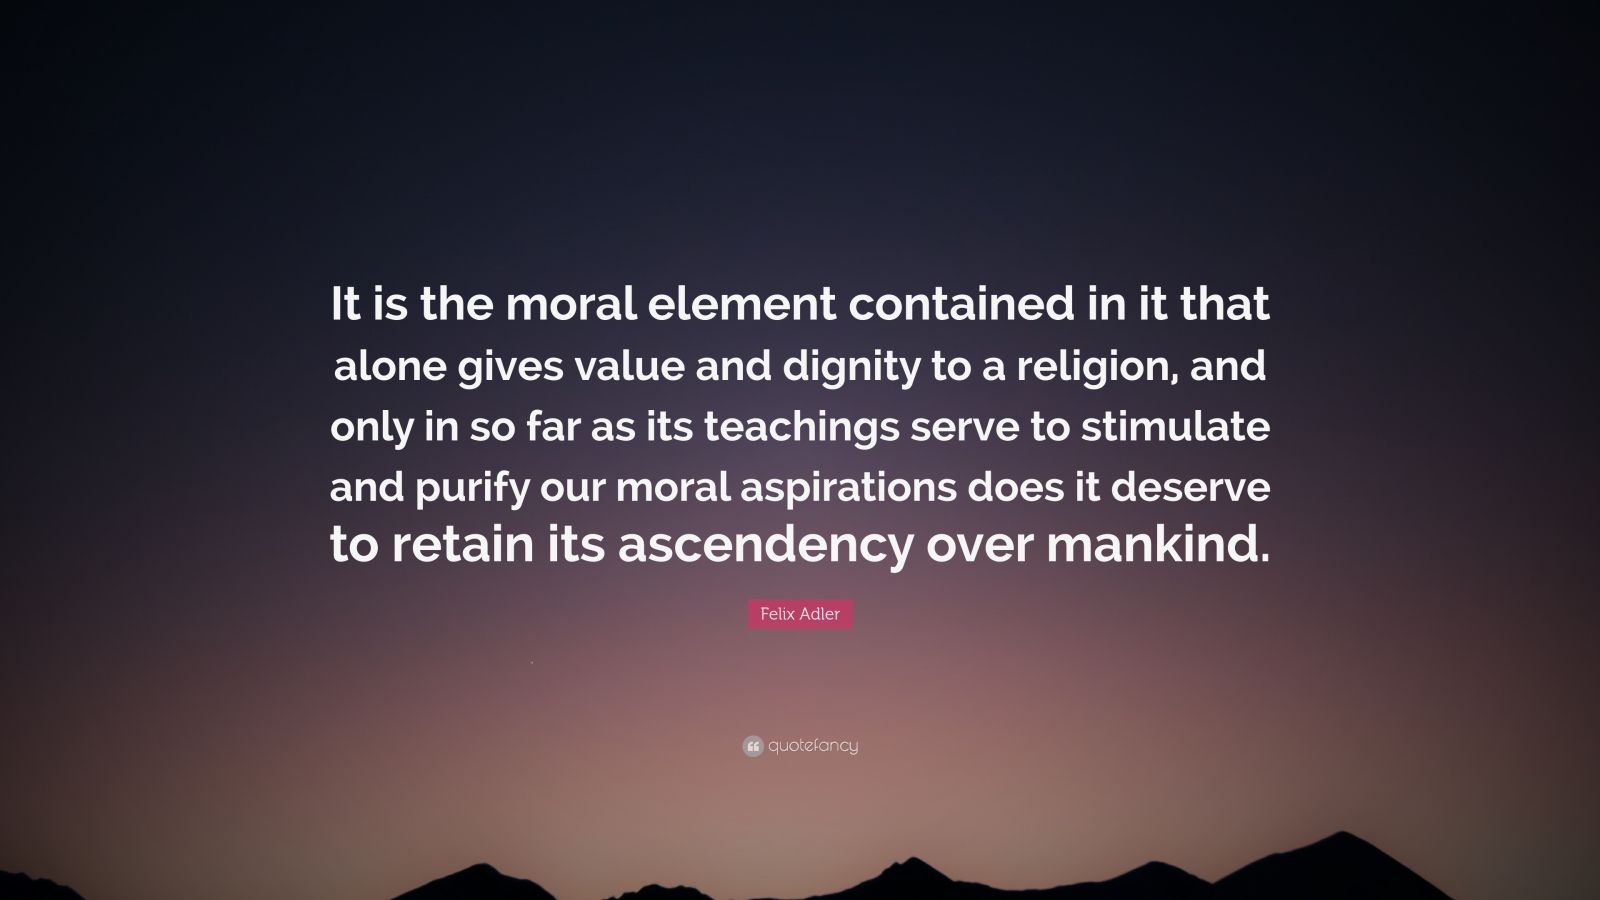 "Felix Adler Quote: ""It is the moral element contained in it that alone gives value and dignity to a religion, and only in so far as its teachings serve to stimulate and purify our moral aspirations does it deserve to retain its ascendency over mankind."""